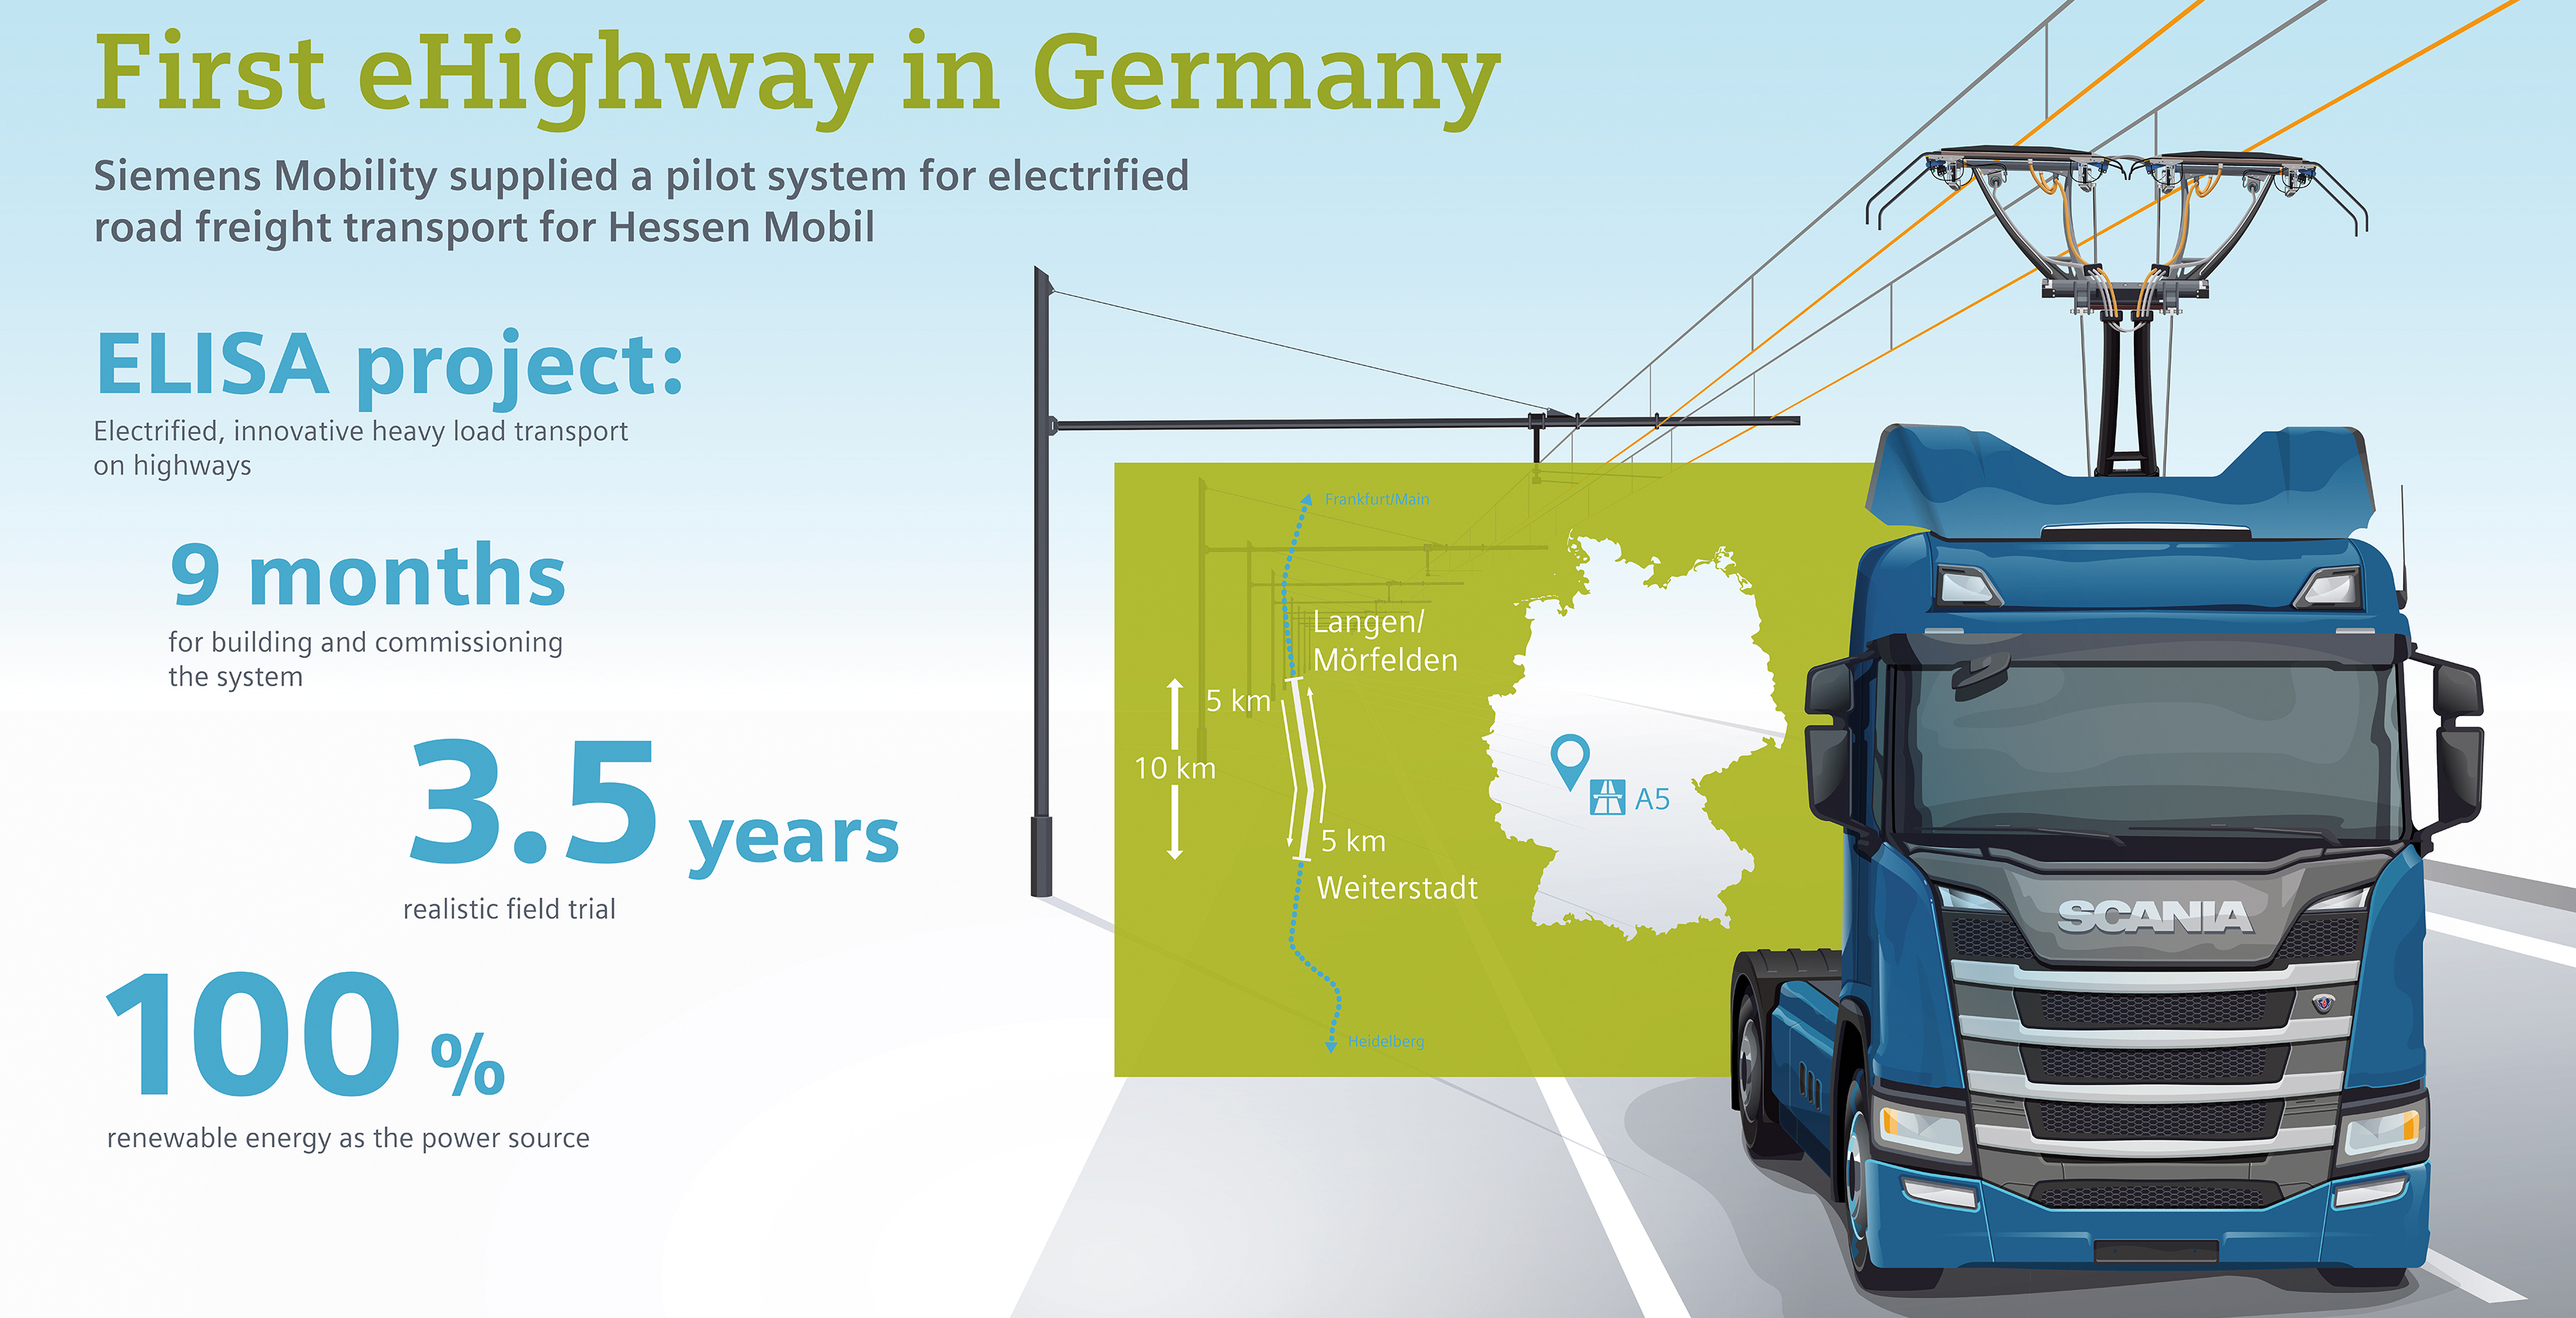 Siemens pressing ahead with eHighway solution to decarbonize transport sector